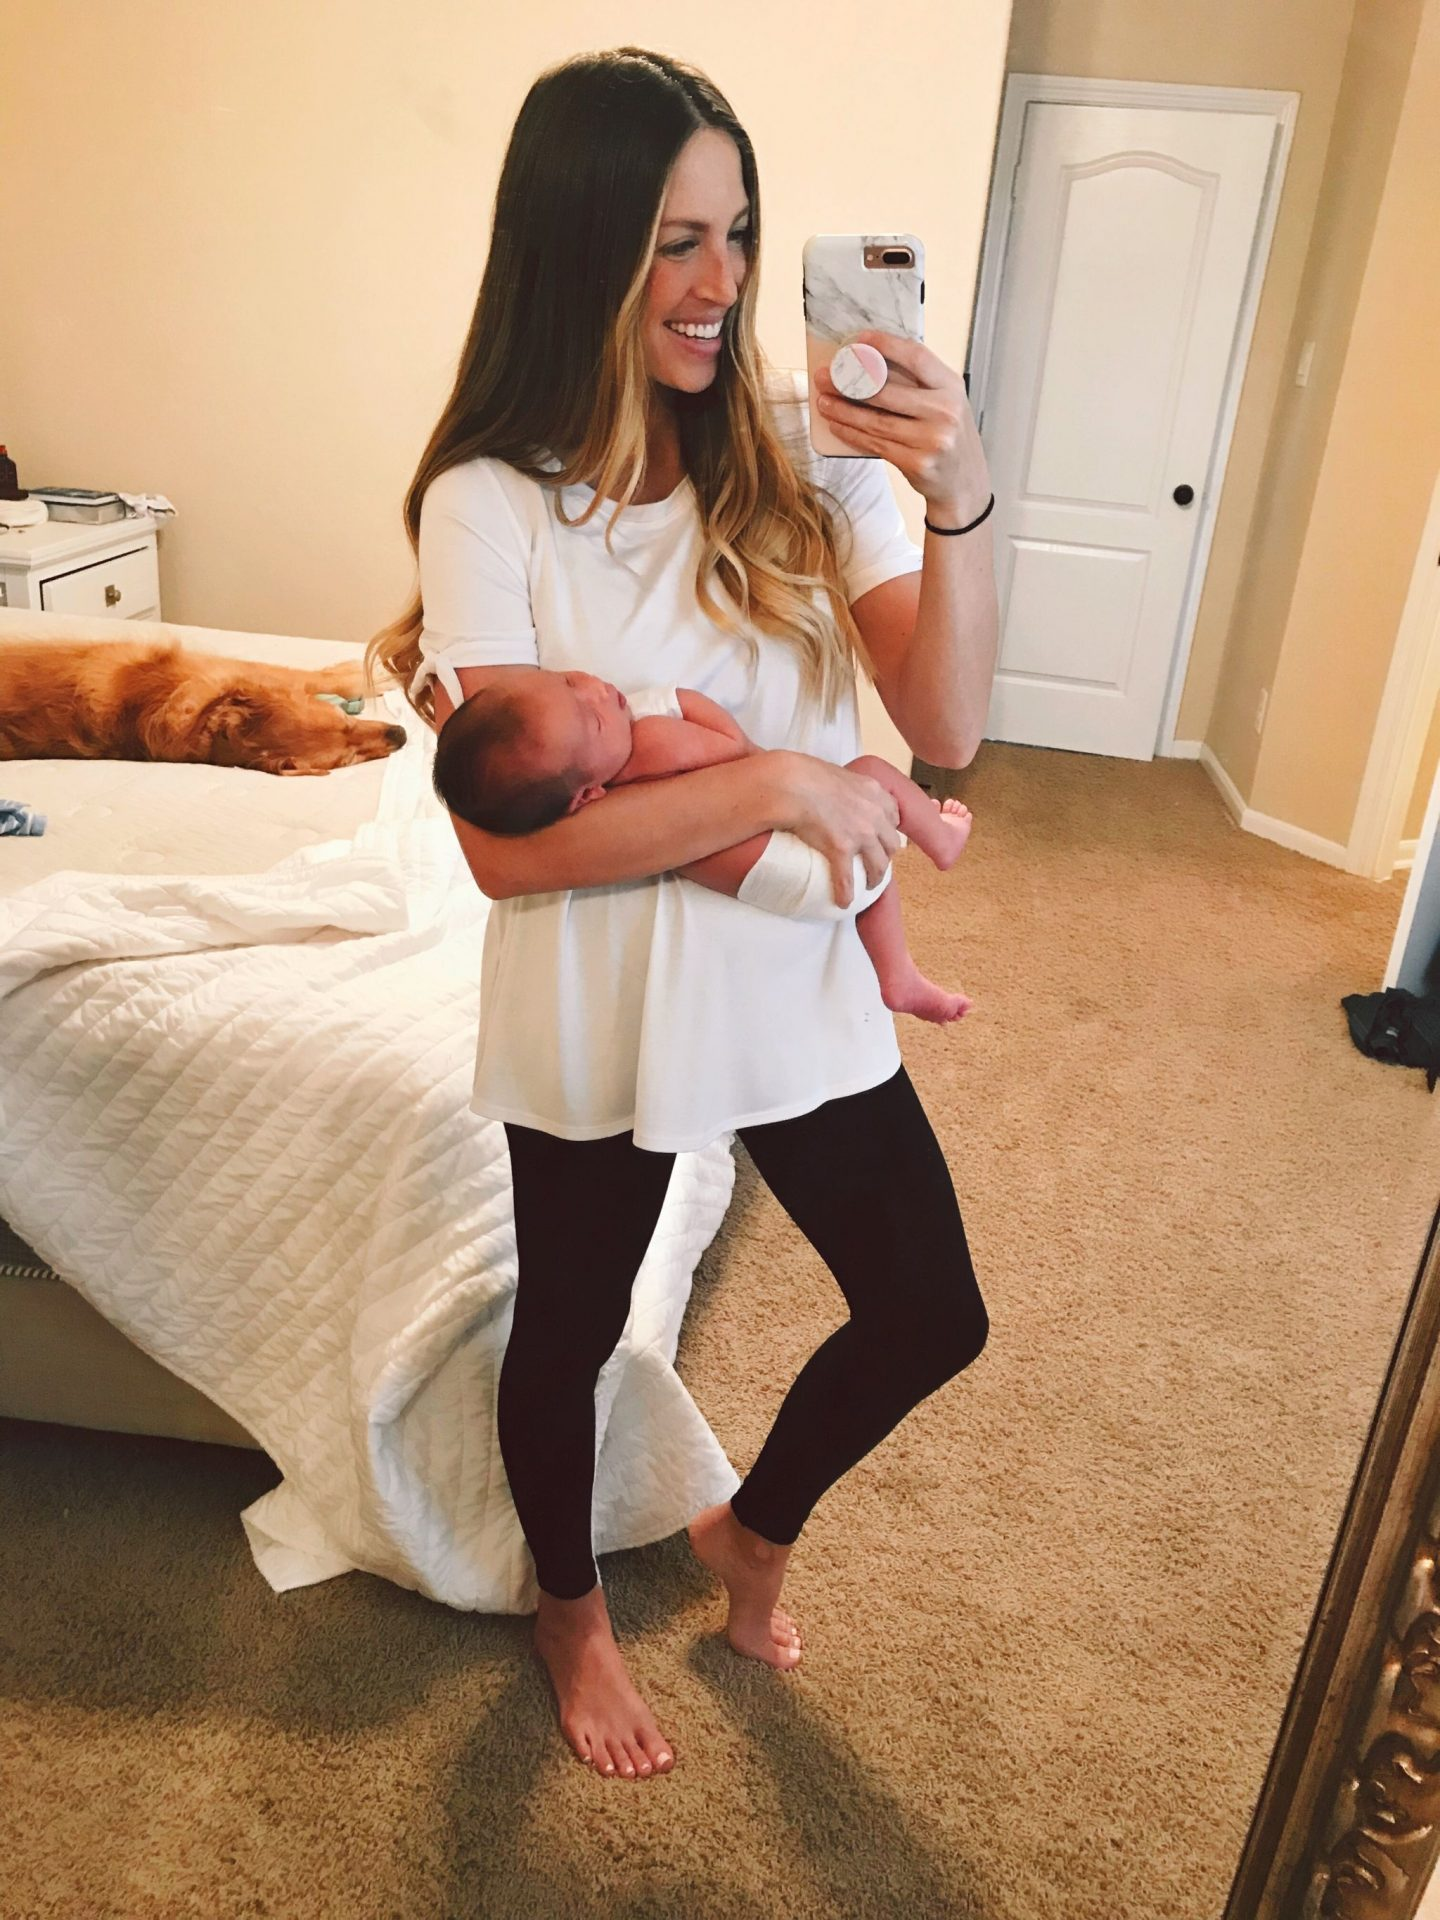 Postpartum What to wear the first few weeks after having a baby